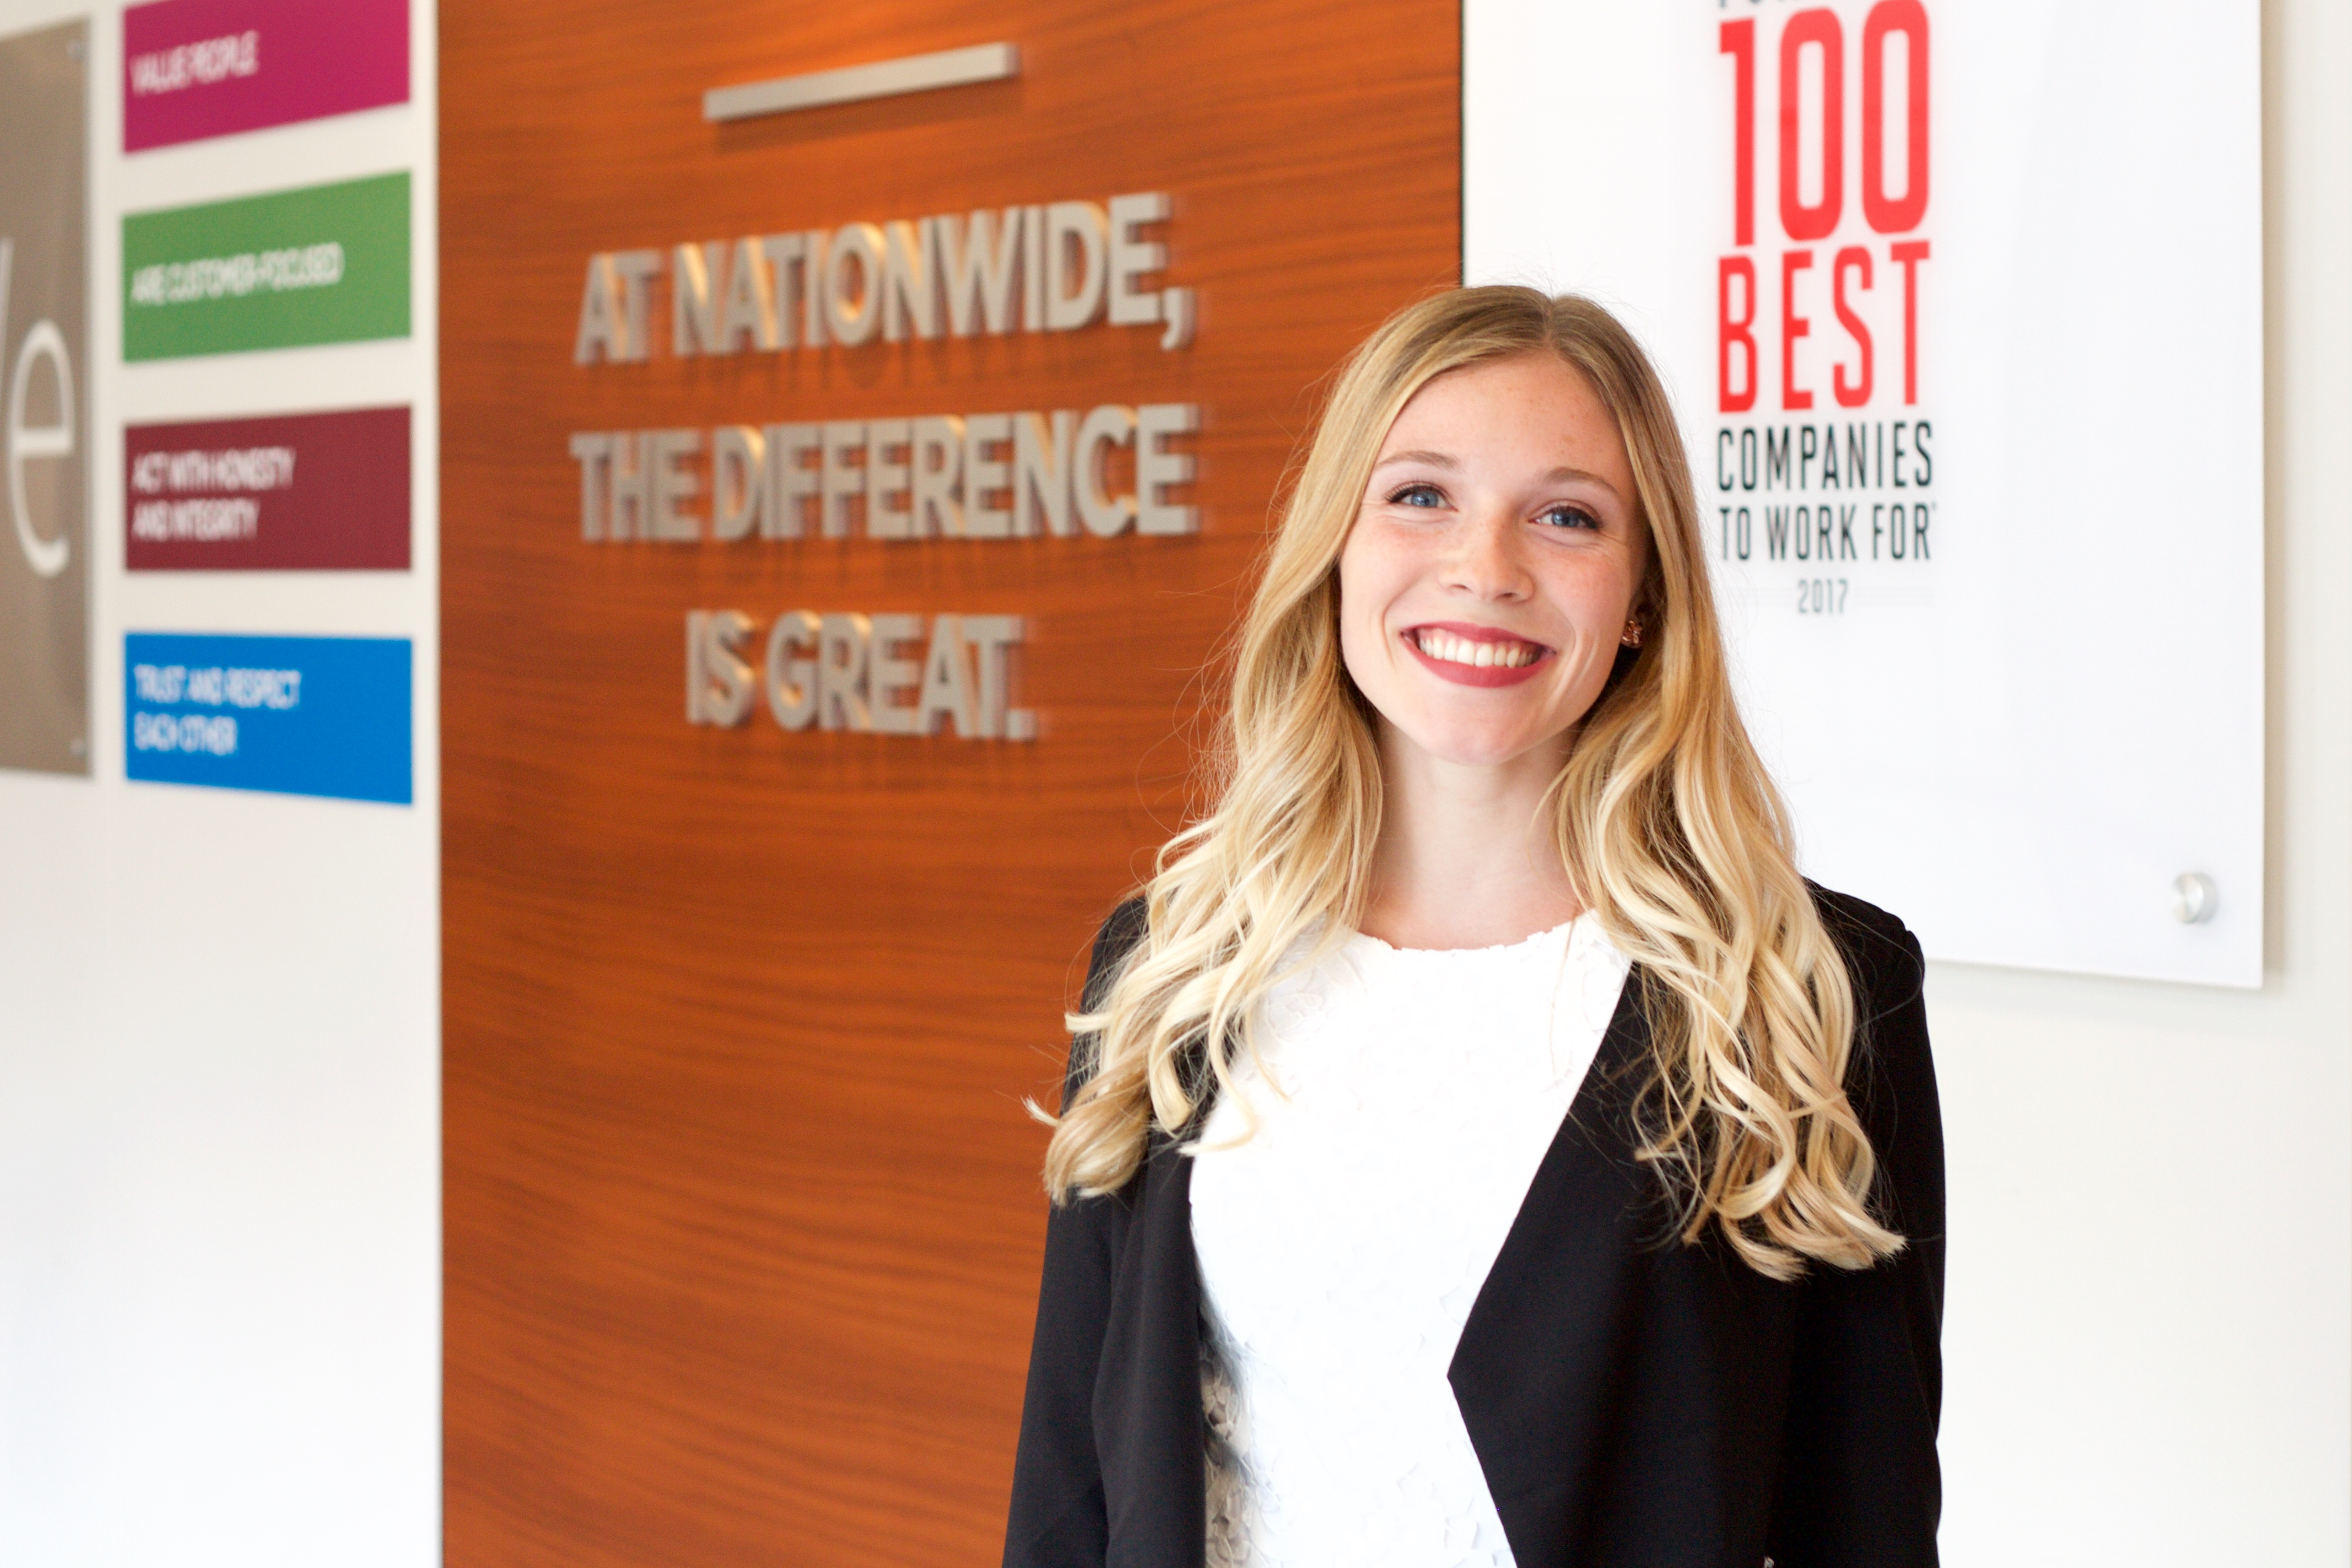 Undergraduate student Aimee Rodin poses at her internship at Nationwide Insurance Company. On the wall behind her the company has a sign that it is part of 100 Best Companies to Work For.